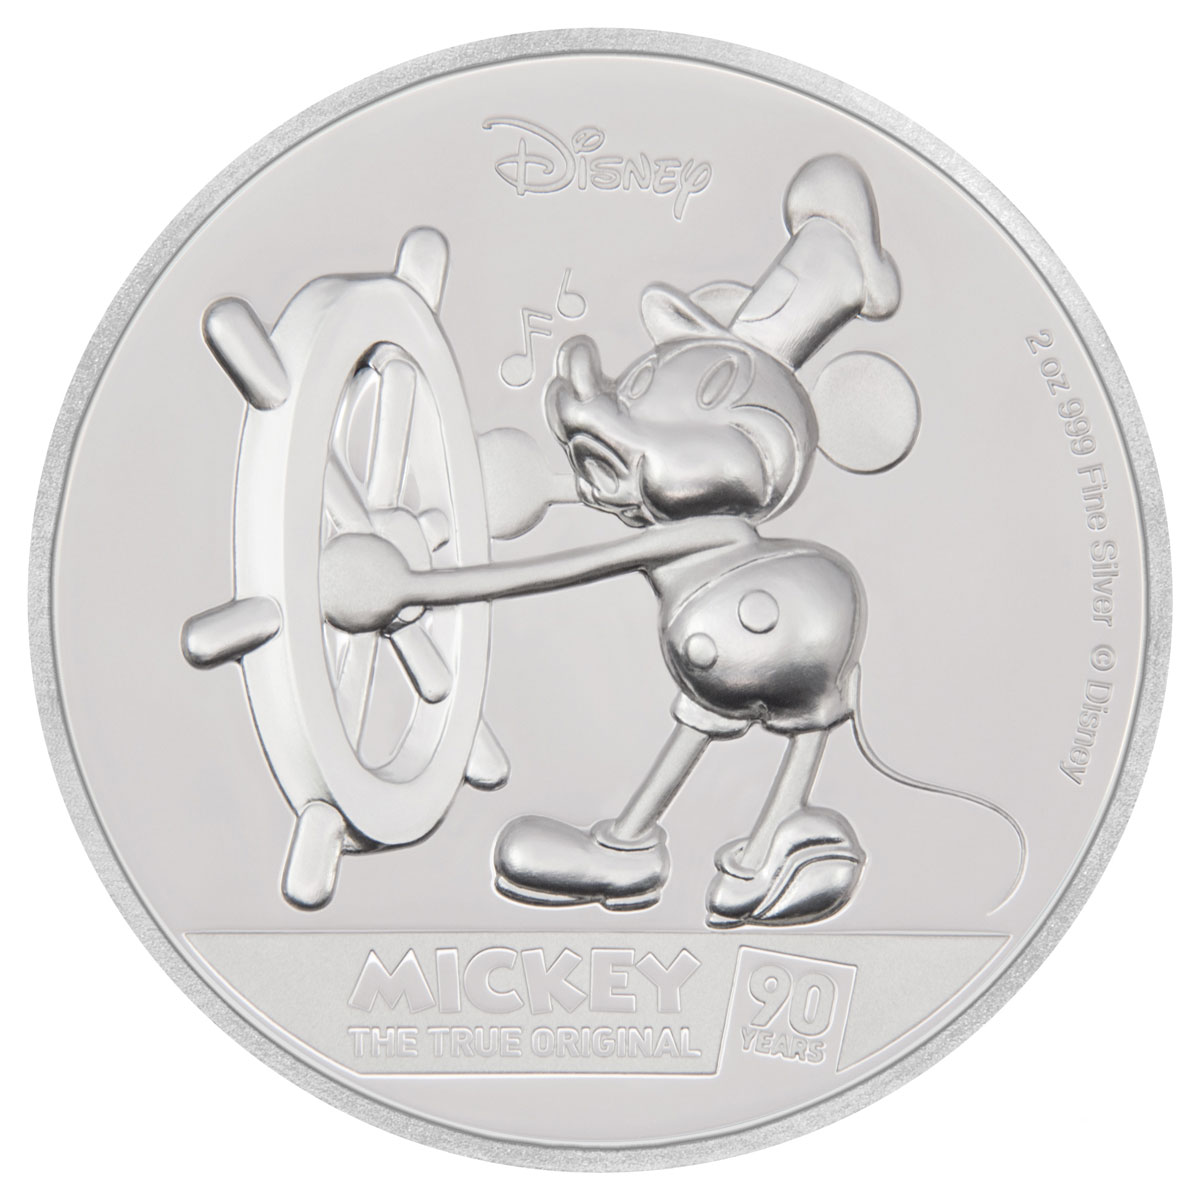 2018 Niue Mickey Mouse 90th Anniversary Ultra High Relief 2 oz Silver Proof $5 Coin GEM Proof OGP